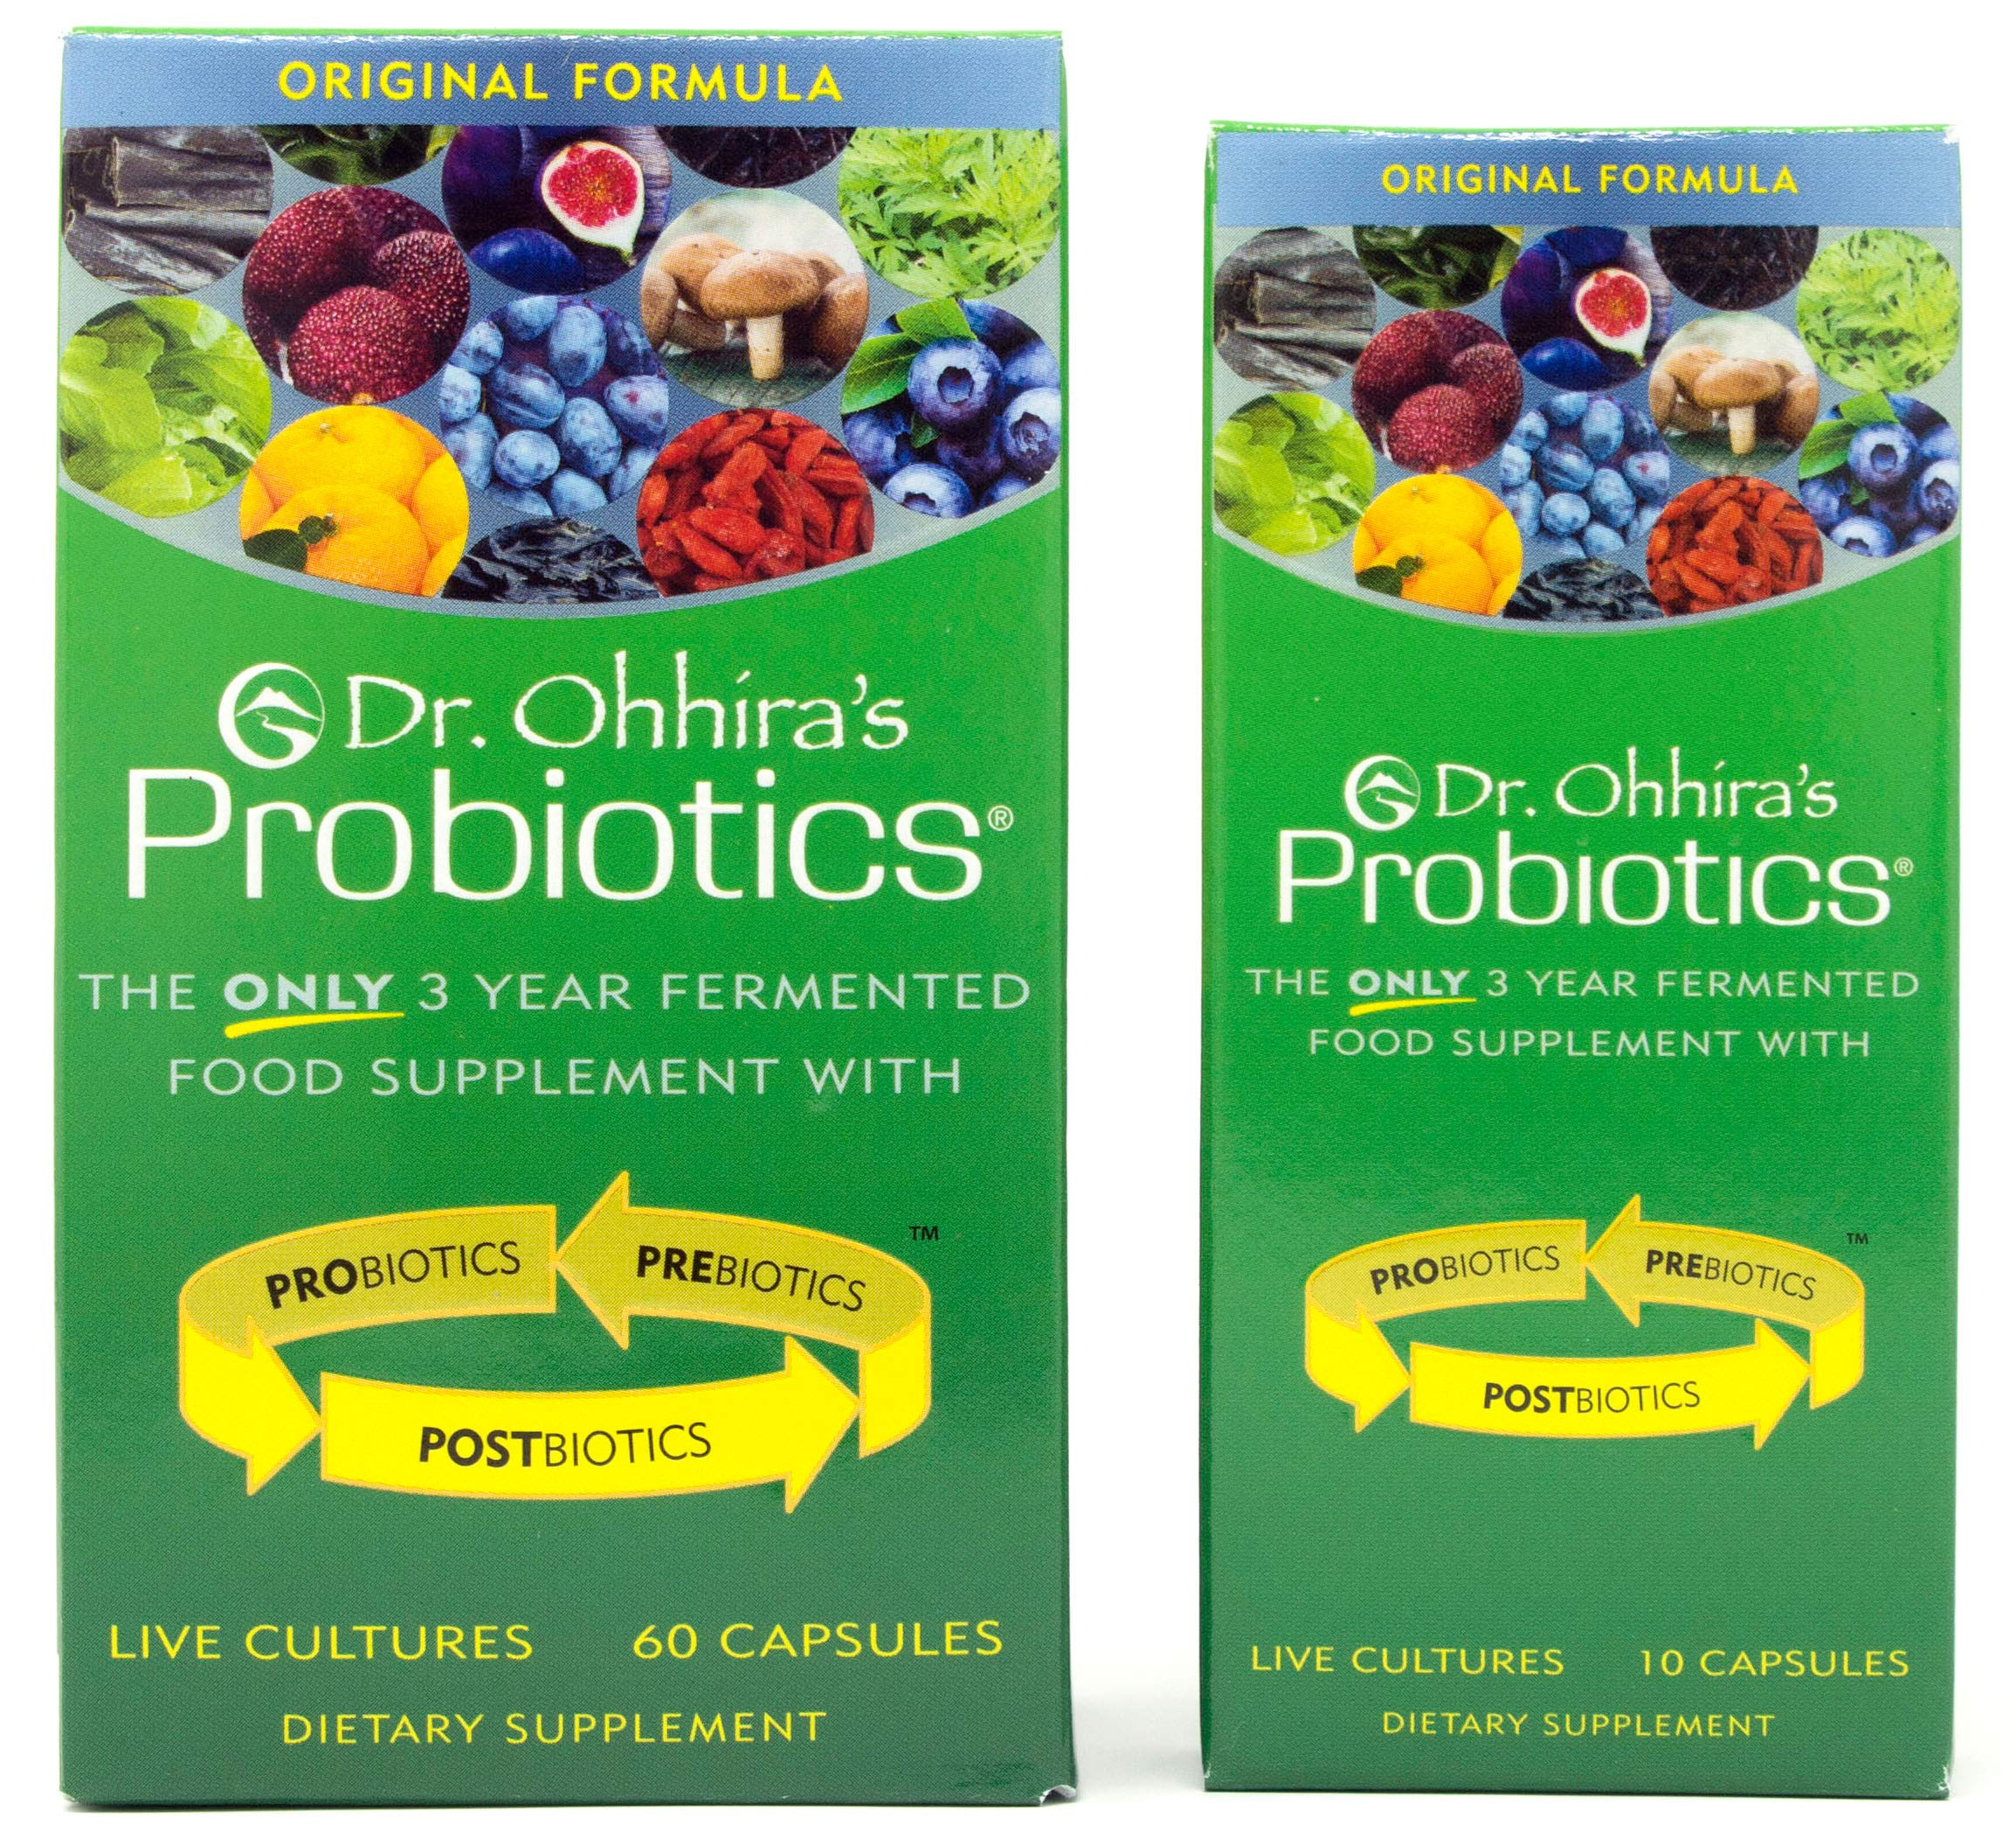 Dr. Ohhira's Probiotics, Original Formula, 60 Caps with Bonus 10 Capsule Travel Pack - 12 Live Strains by Essential Formulas